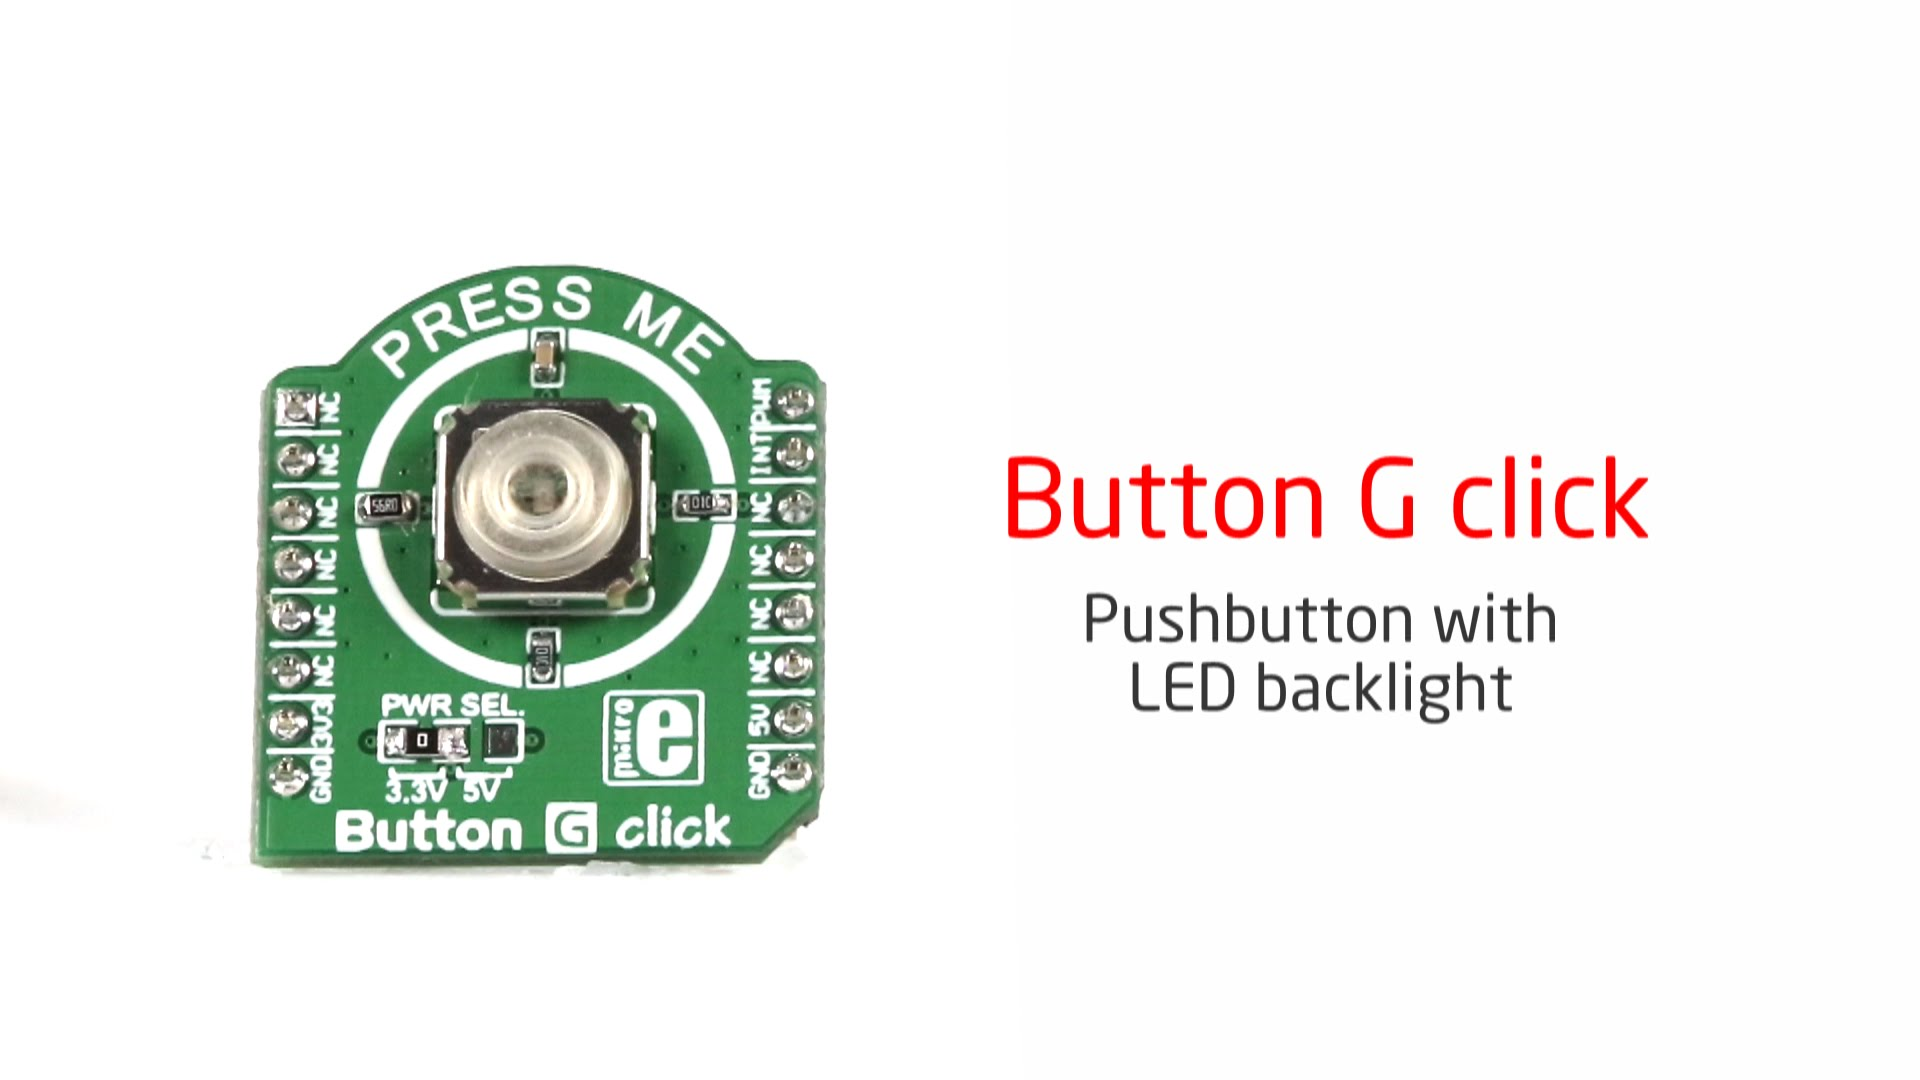 Another flavor of the button click with the LED backlight released